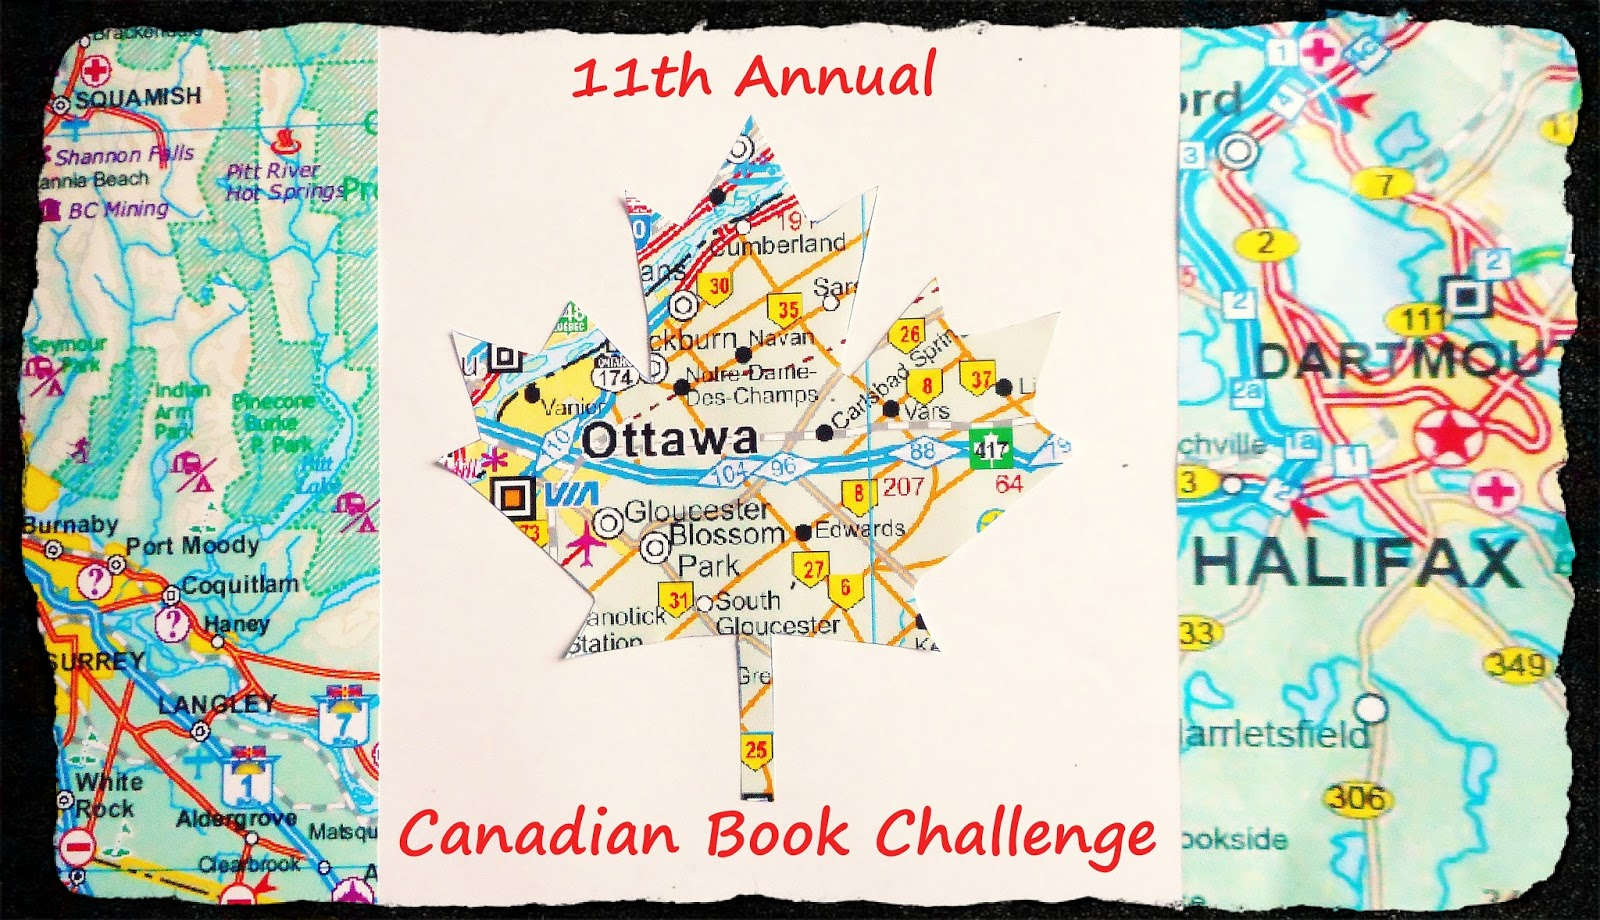 11th annual canadian book challenge final round up